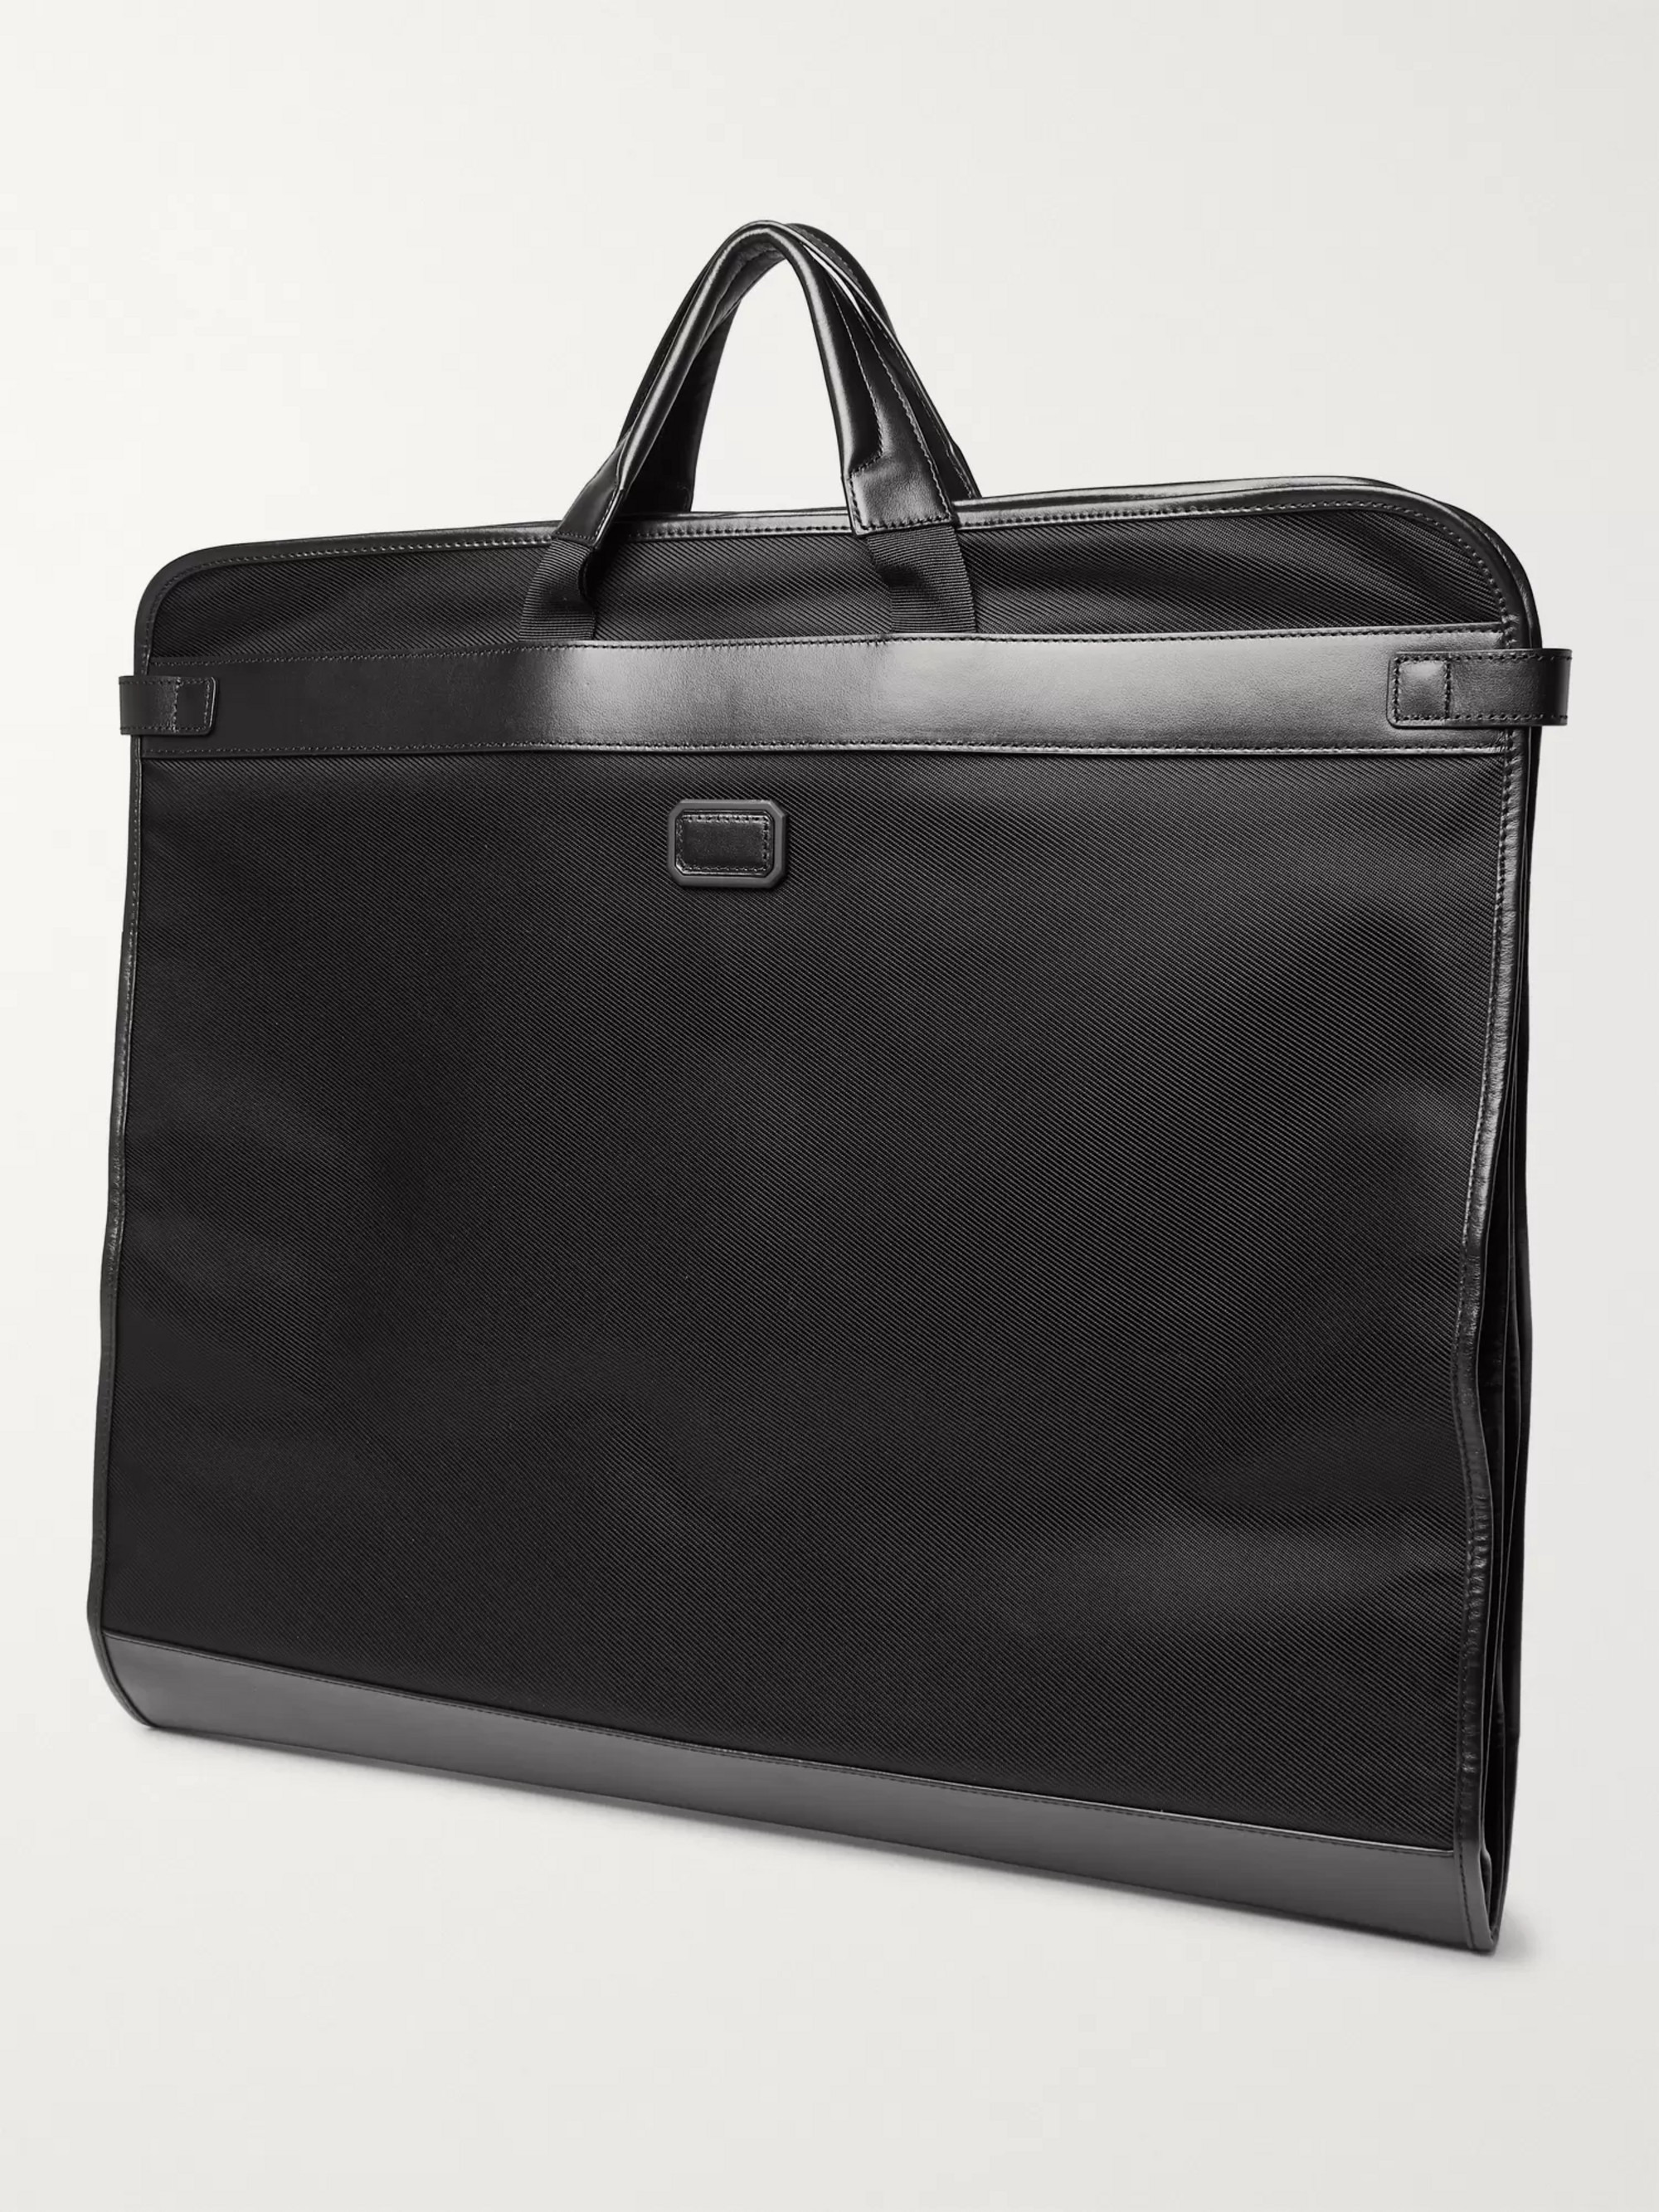 Montblanc Nightflight Leather-Trimmed Canvas Garment Bag